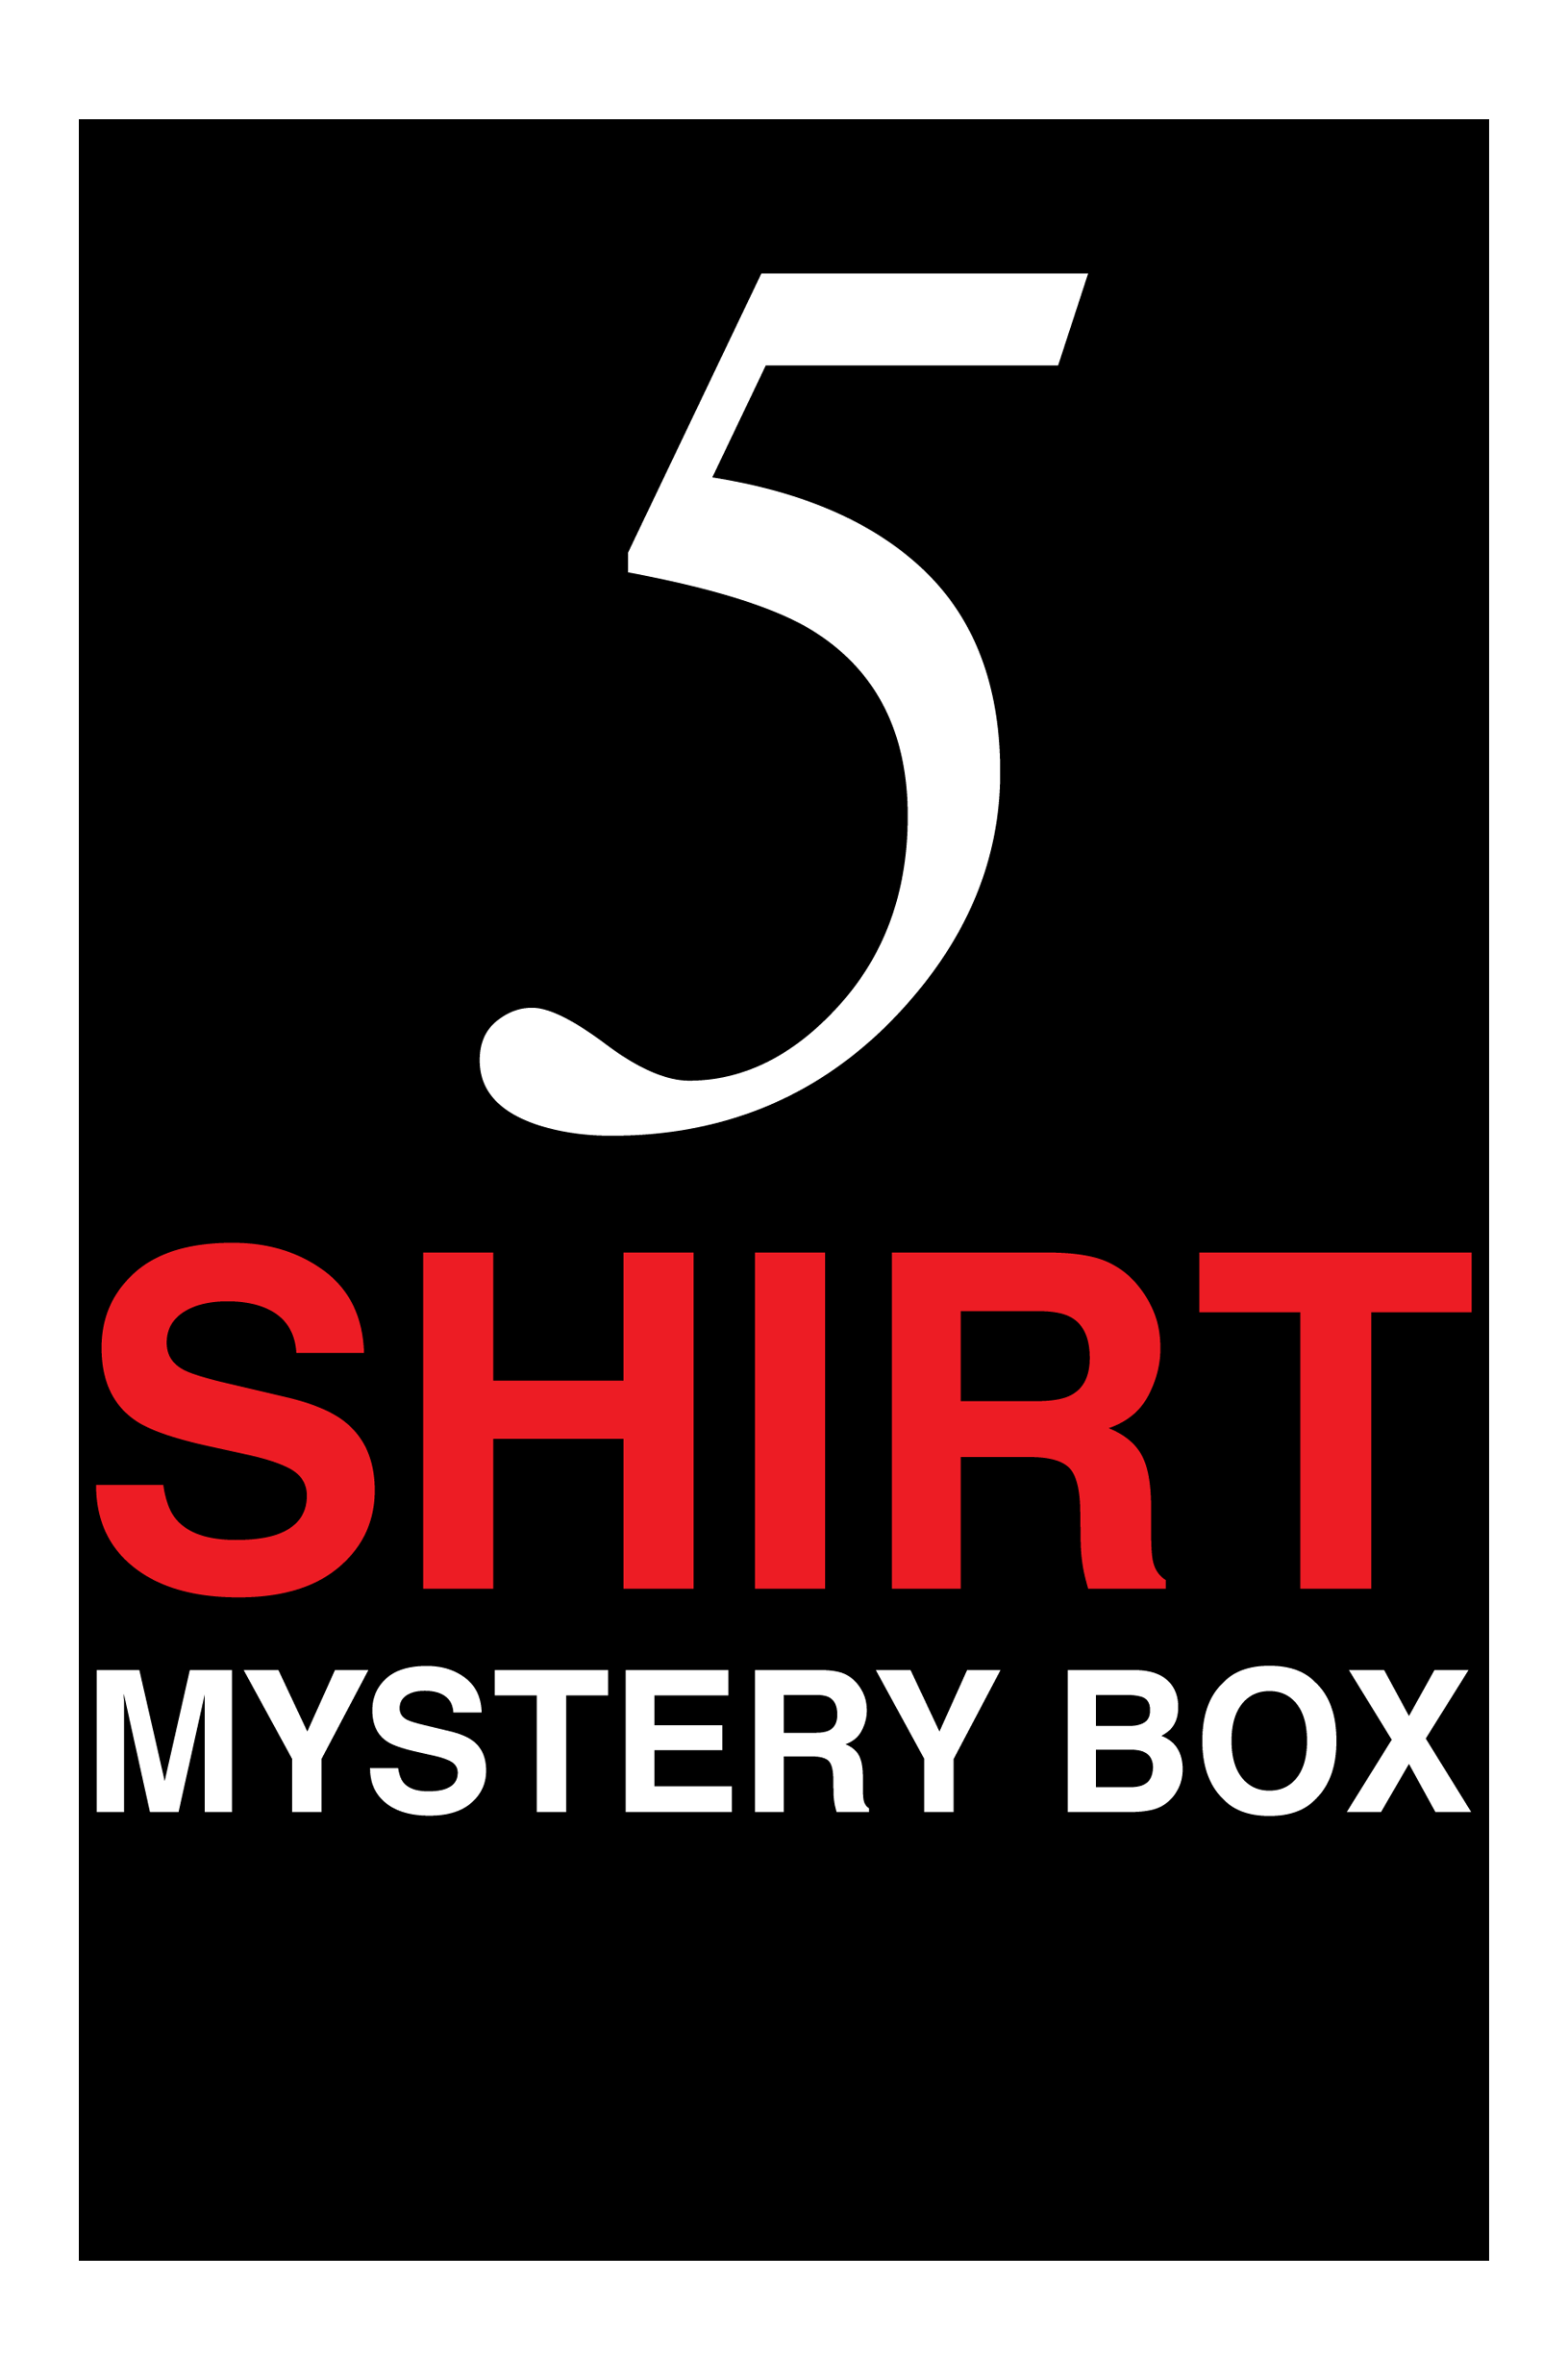 5 Shirt Mystery Box - Warehouse Sale